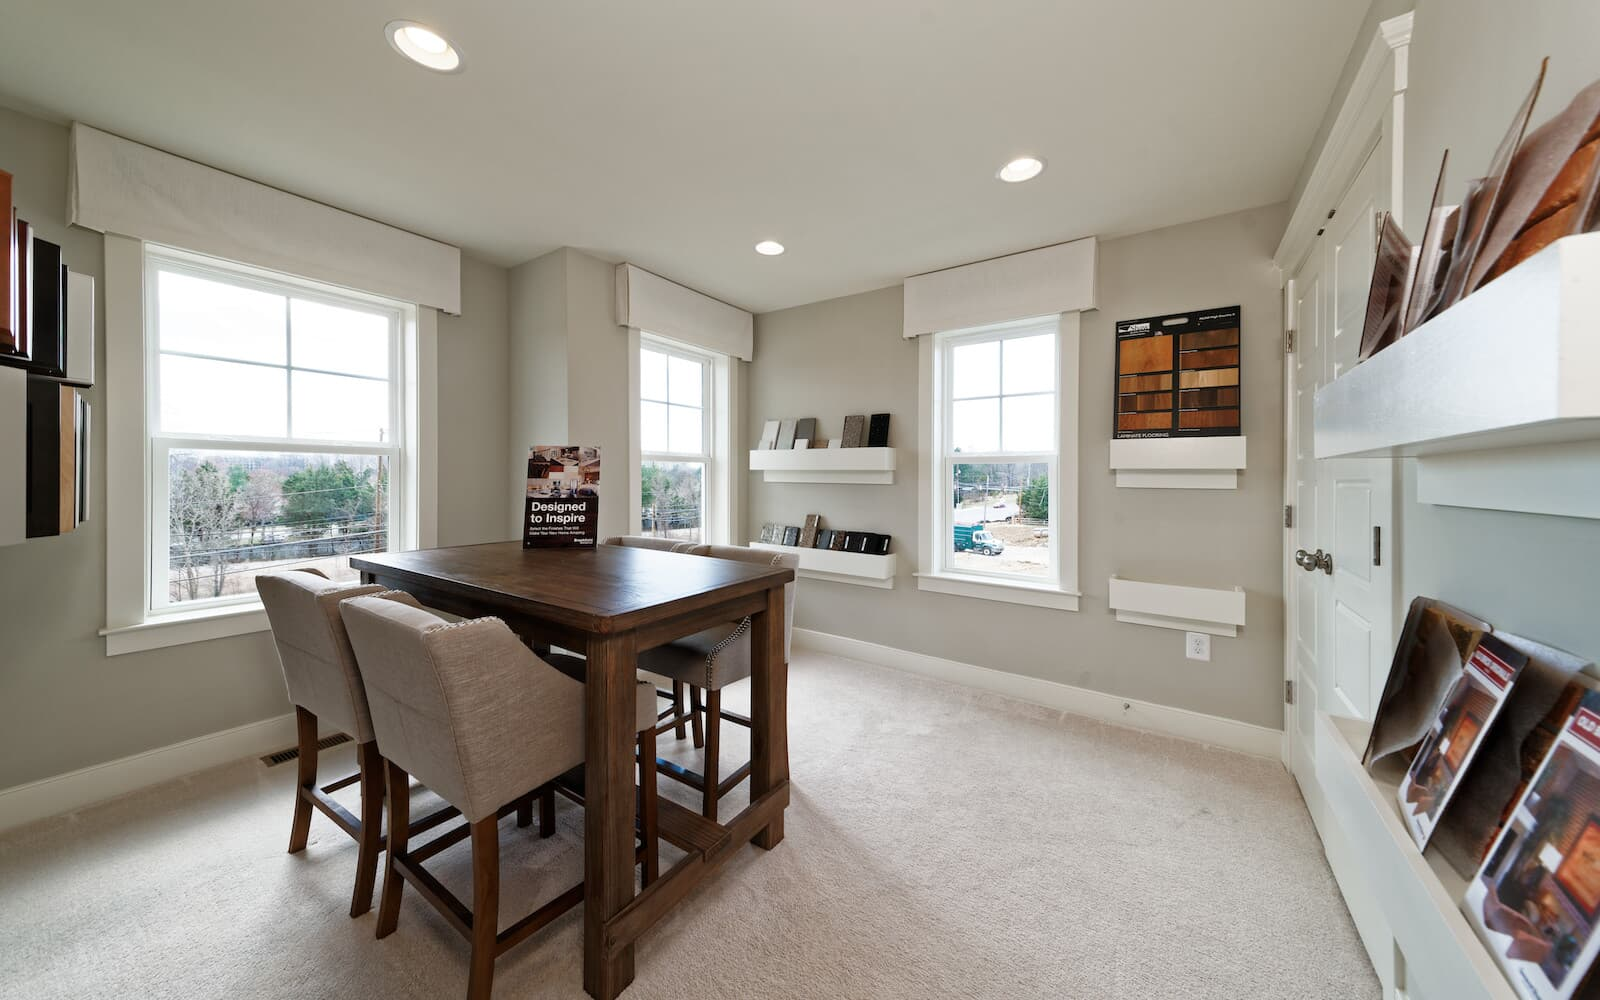 Aurora-bedroom3-townhomes-silver-spring-md-bradfords-landing-brookfield-residential